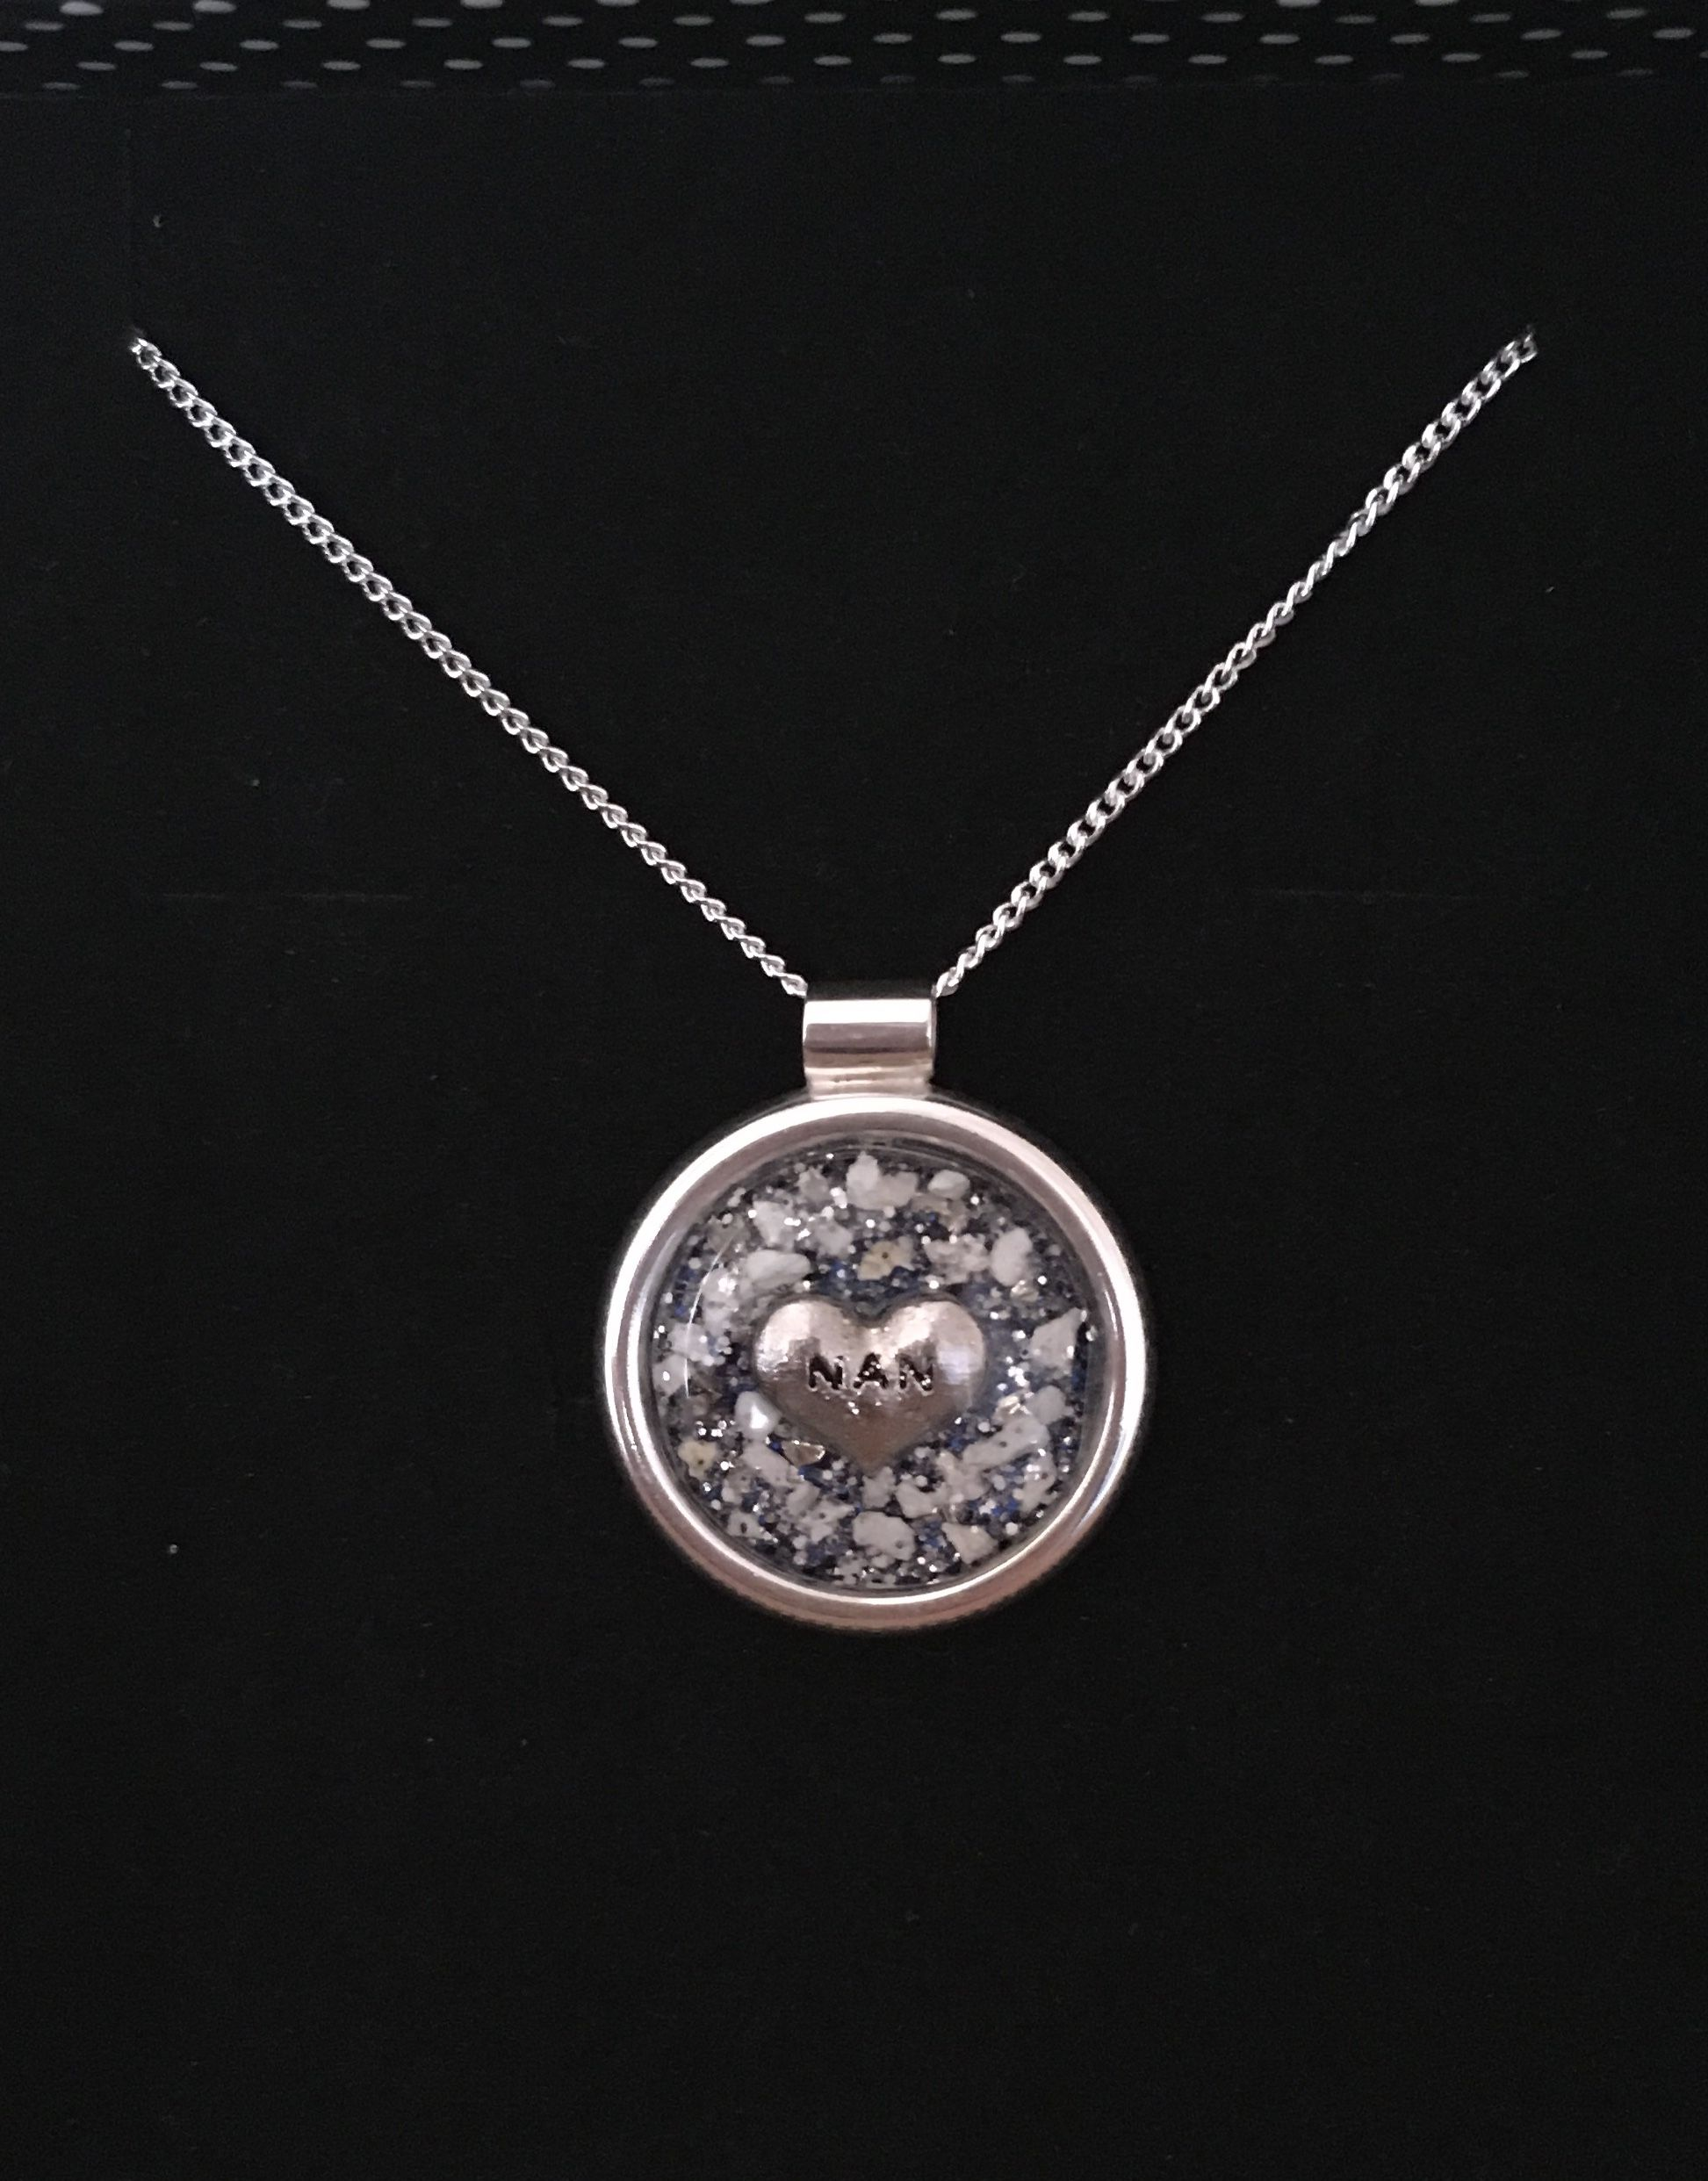 Cremation Ashes Sterling Silver Paw Print Pendant Pet Memorial Memorial Pendant Cremation Ashes Jewellery Resin Necklace